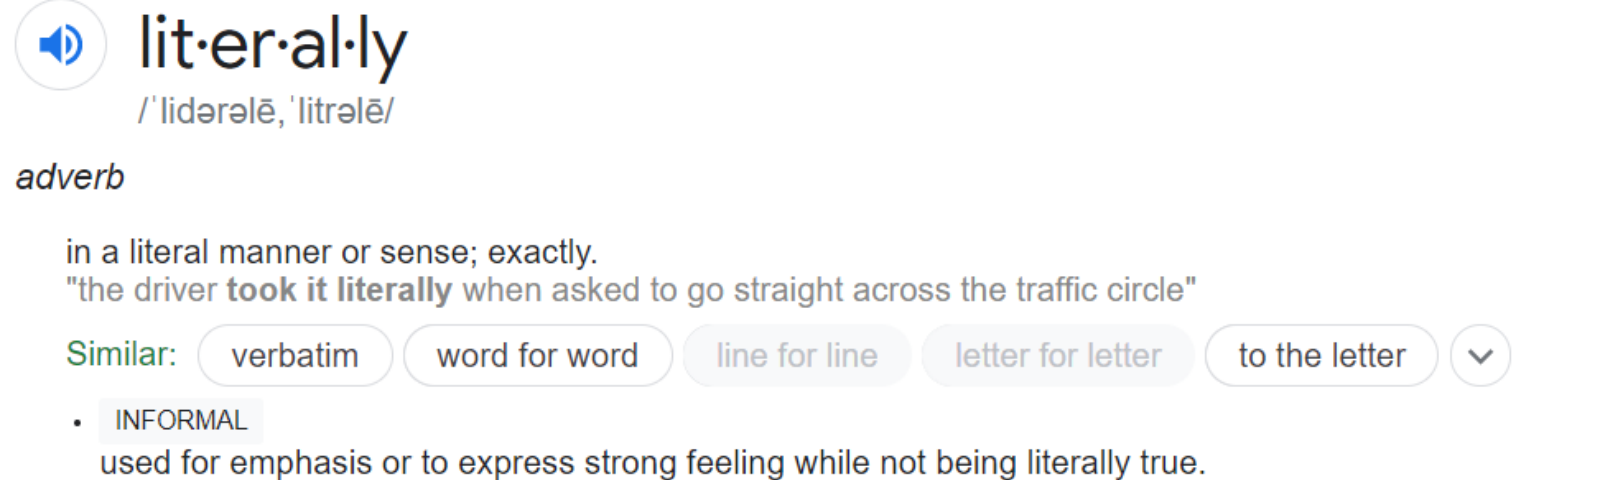 Screenshot of dictionary definition of literally